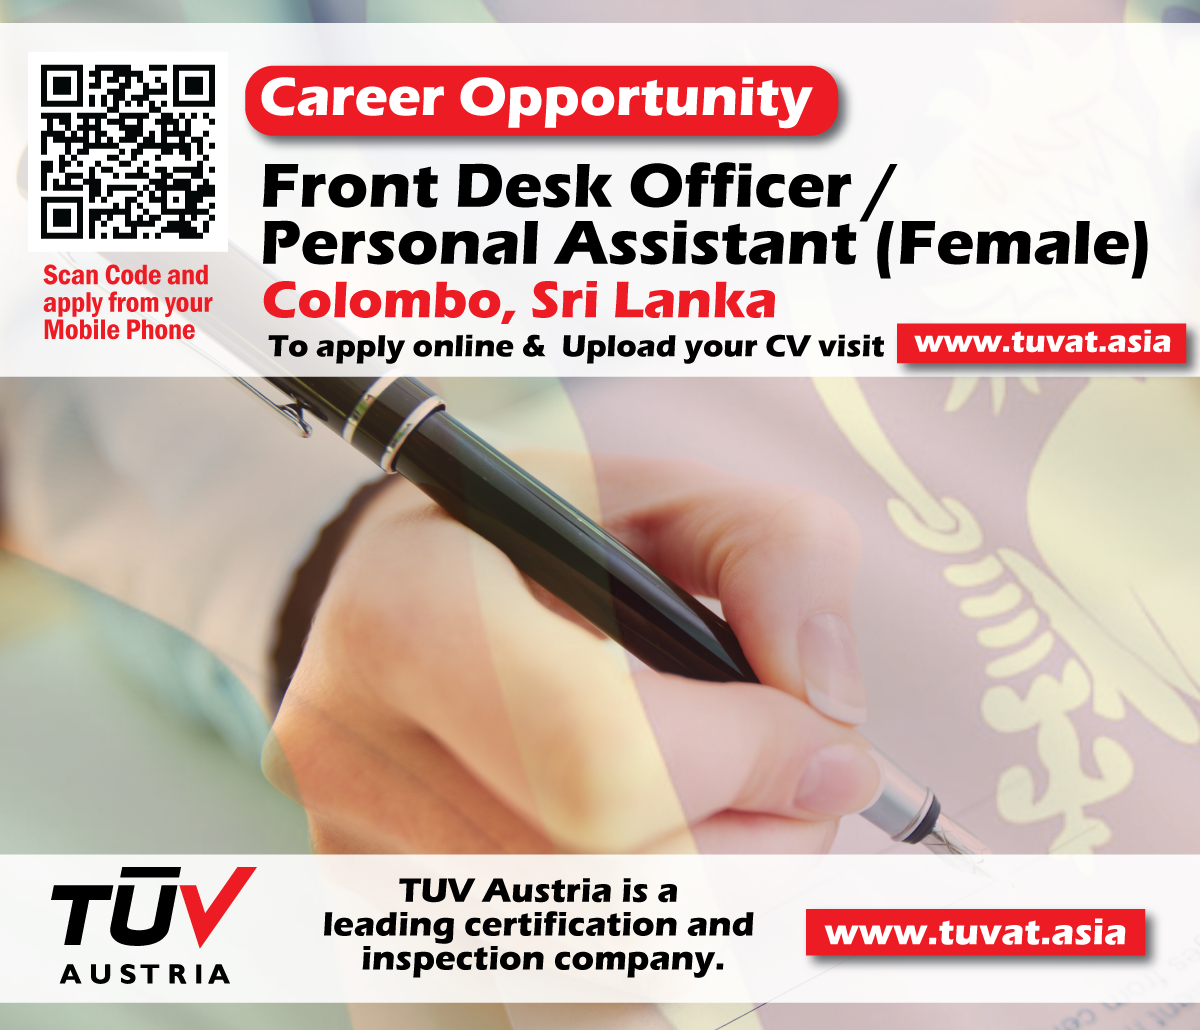 career opportunity front desk officer personal assistant career opportunity front desk officer personal assistant female to upload your cv and apply online or contact sri lanka 2301056